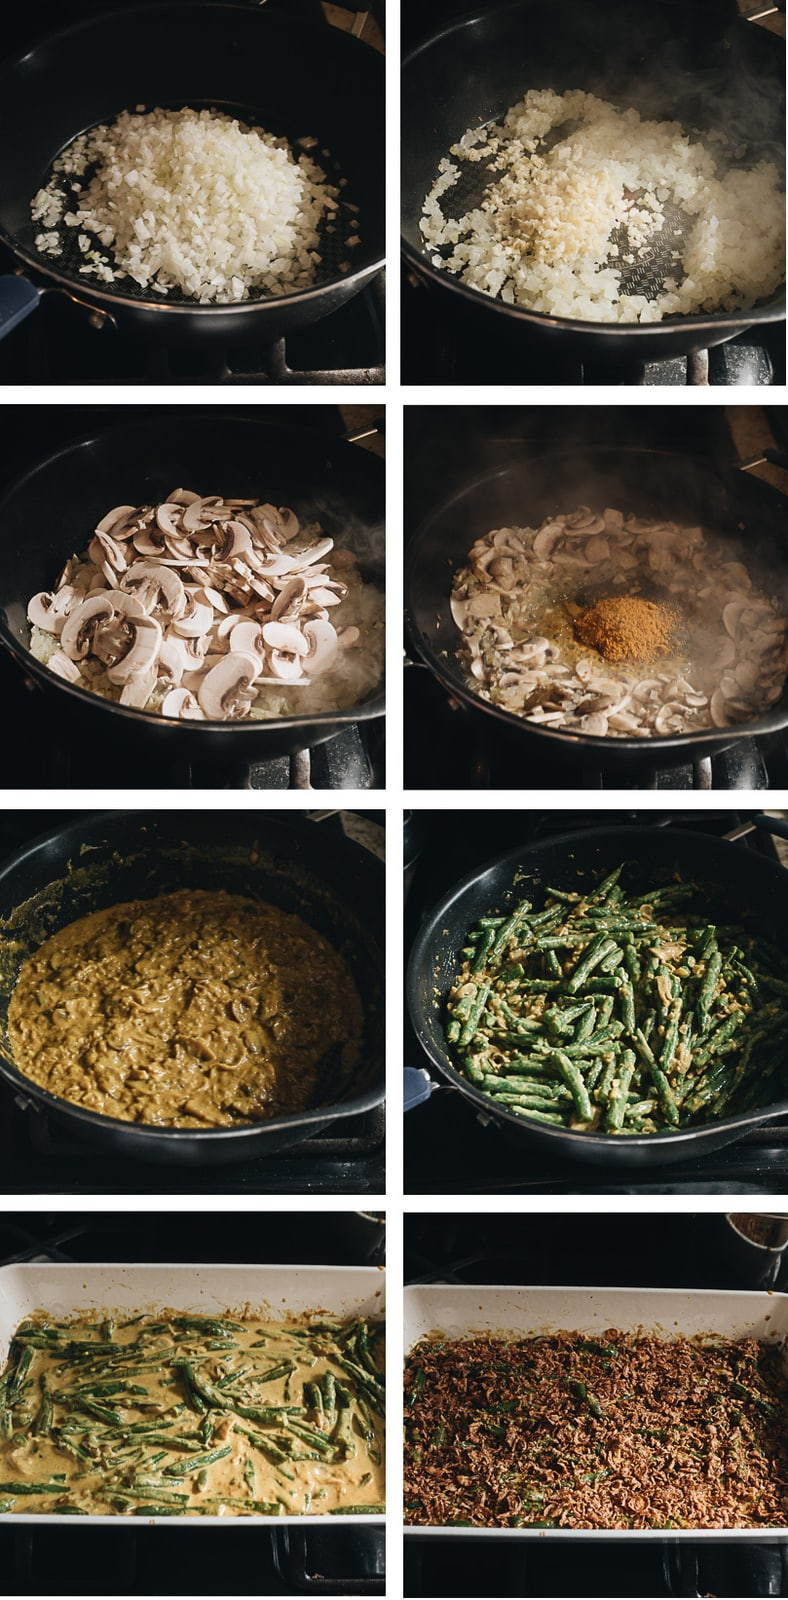 Curried vegan green bean casserole cooking step-by-step